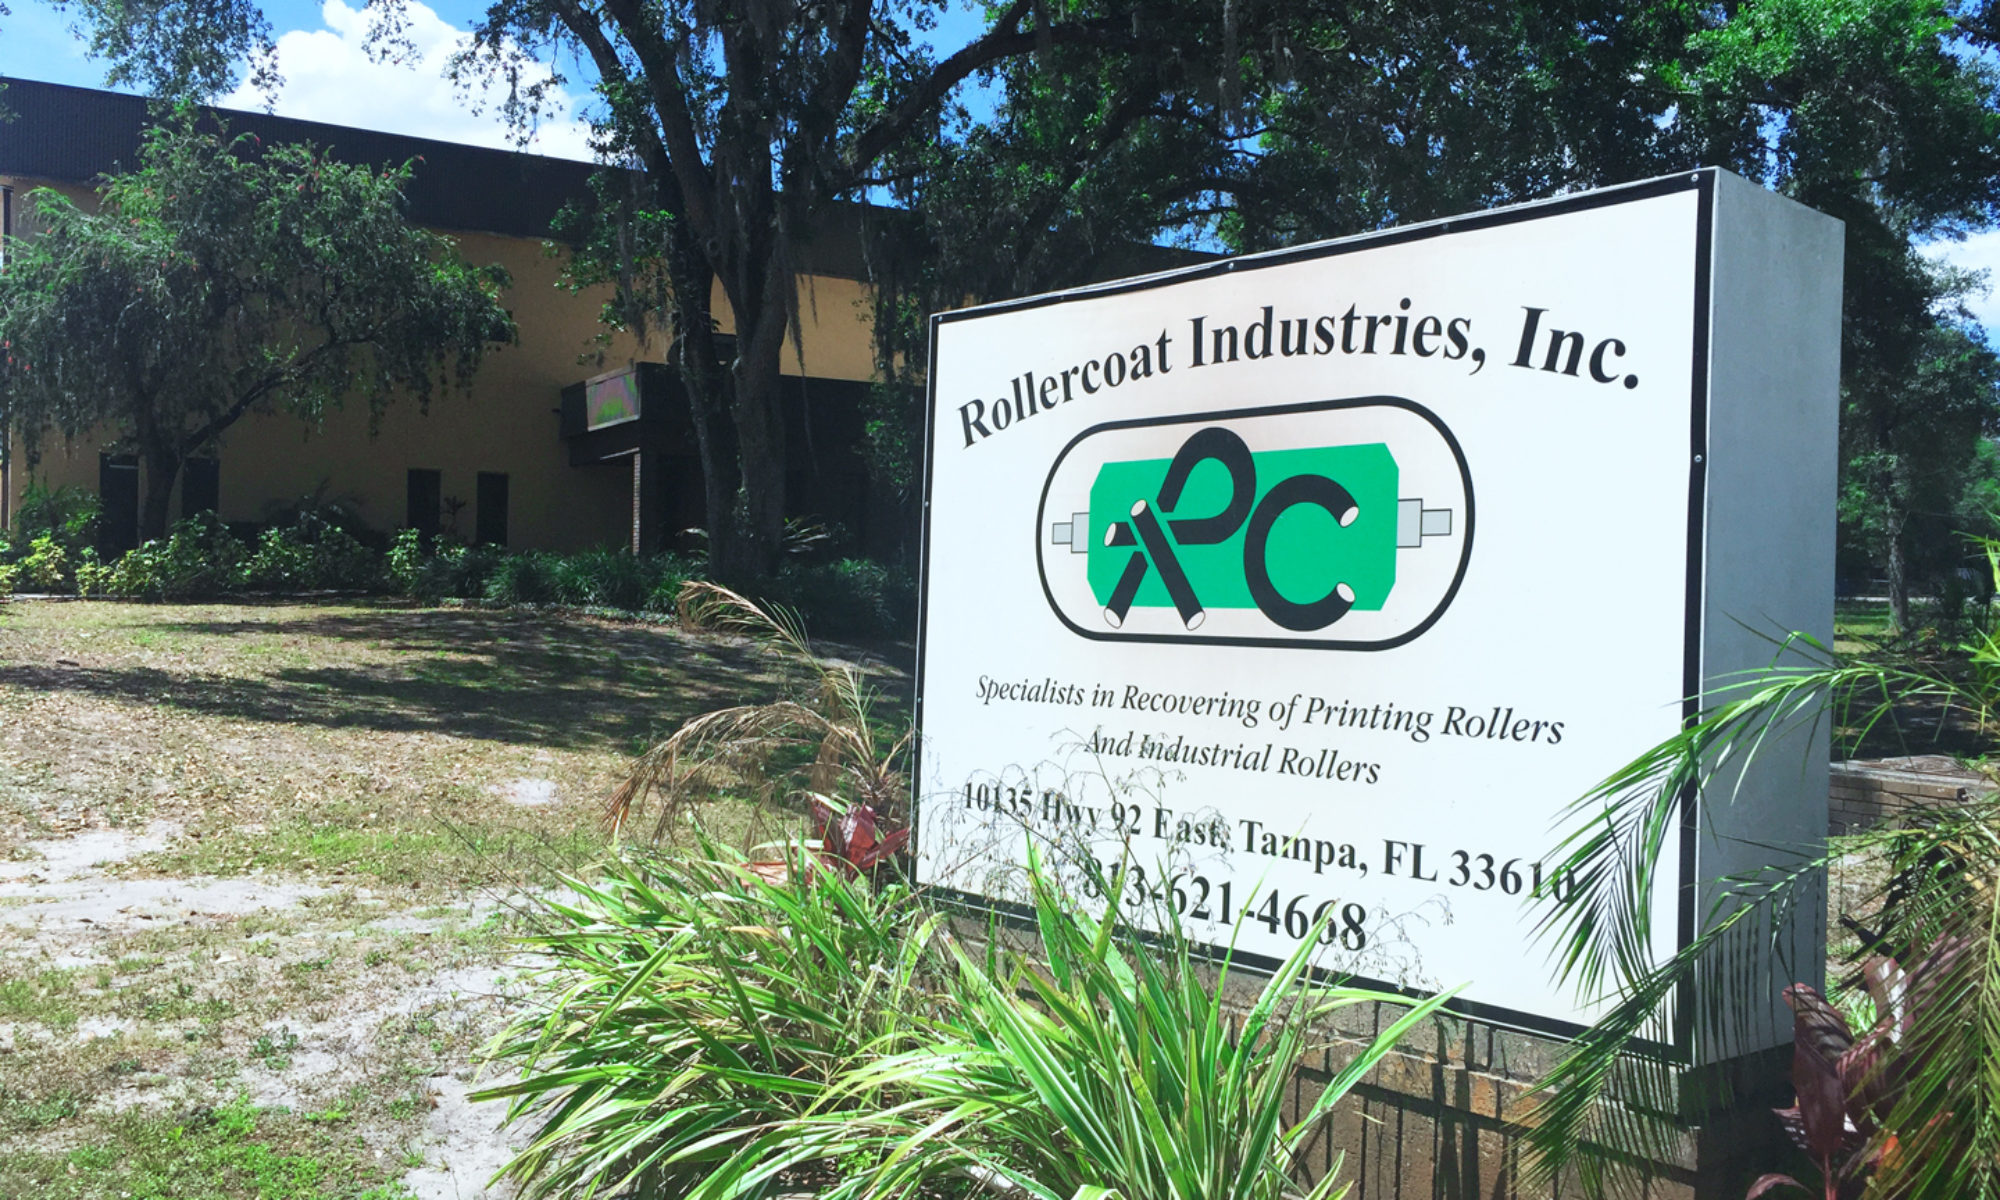 Rollercoat Industries, Inc.